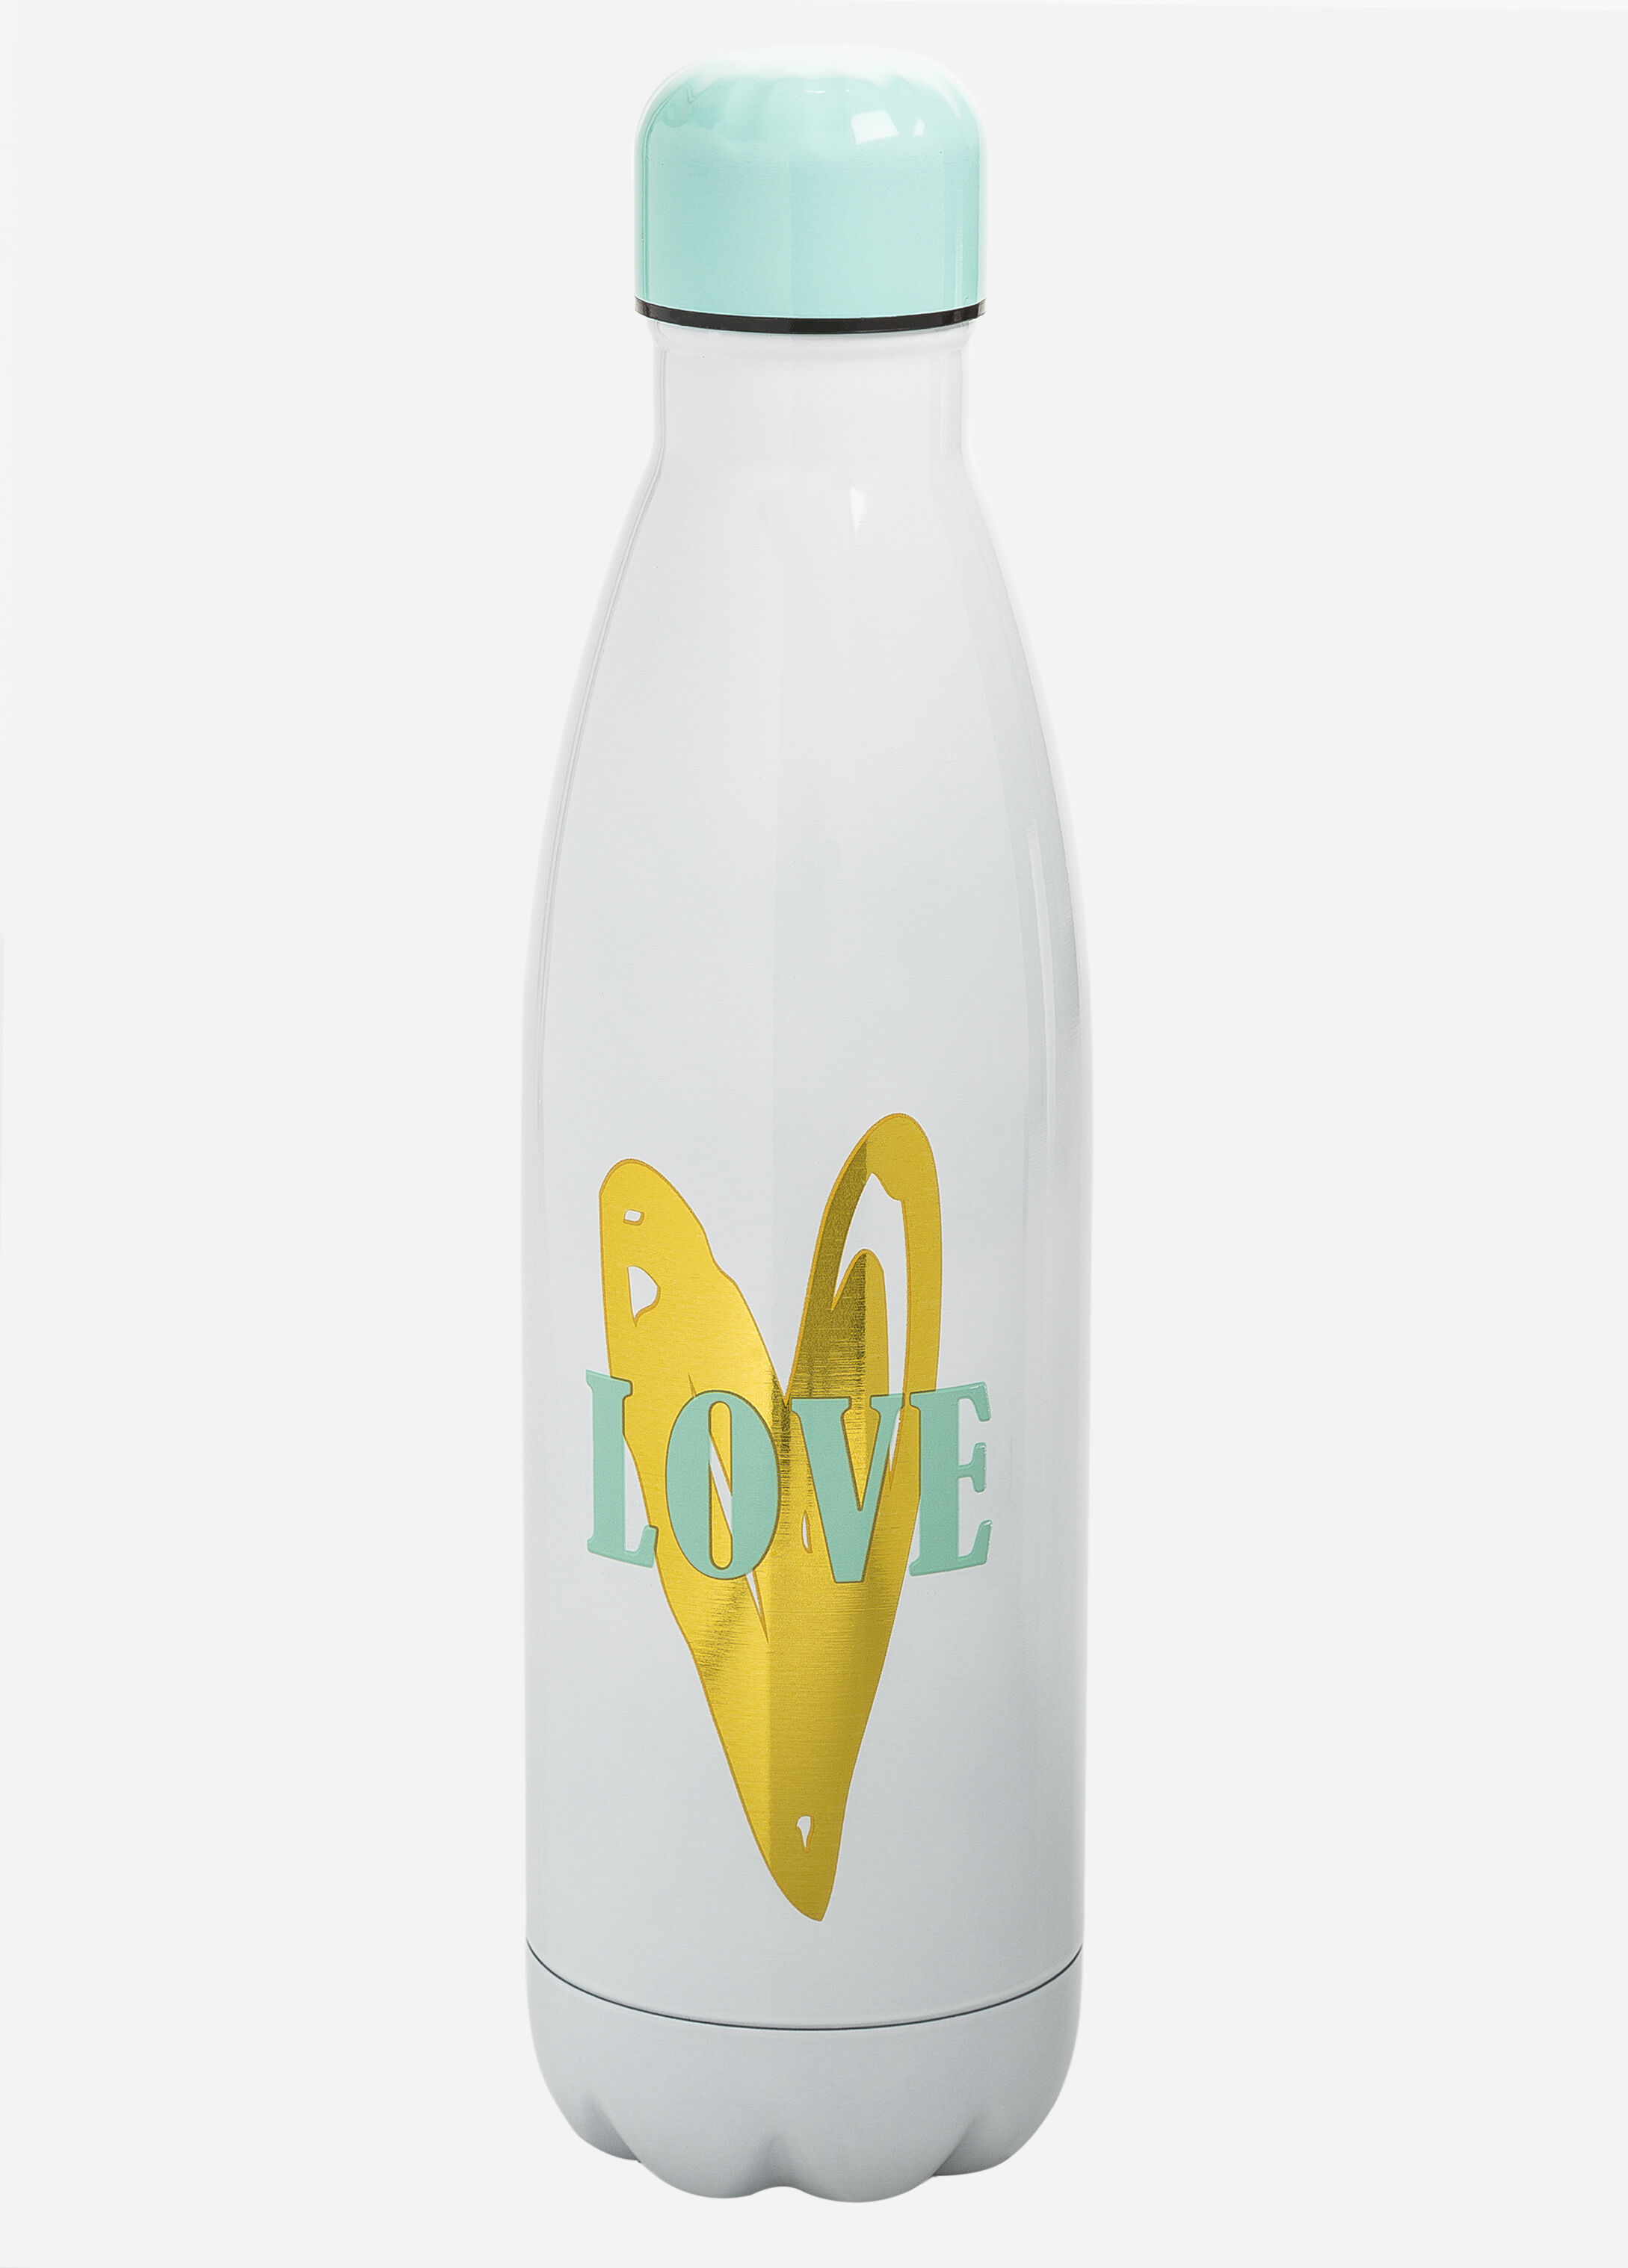 Inspirational Insulated Metal Water Bottle Silver - Clearance